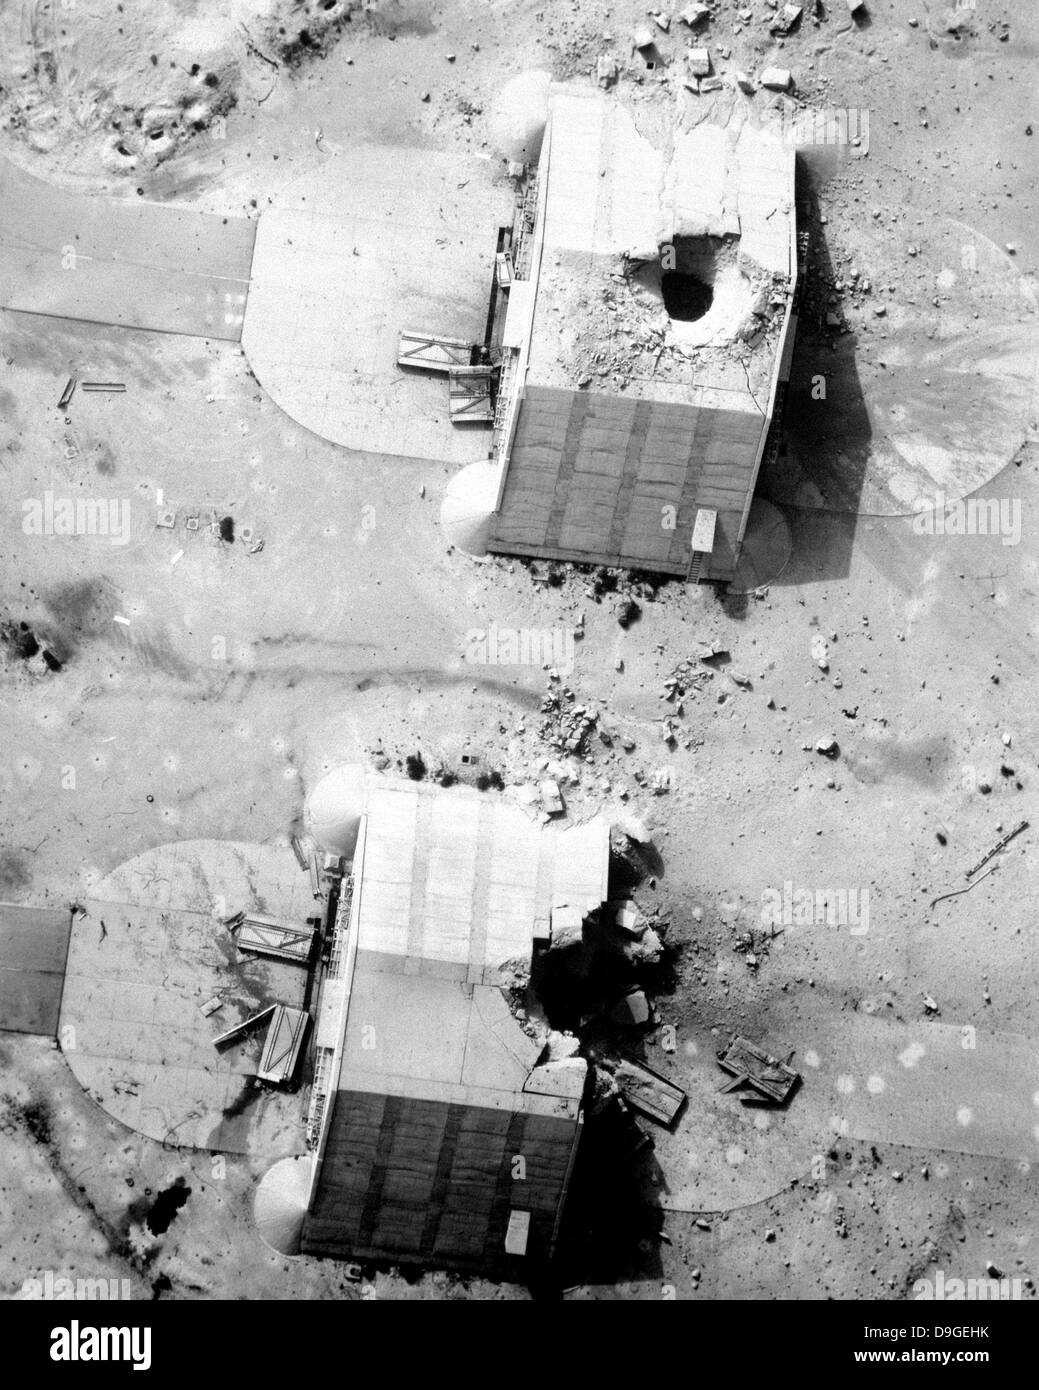 A coalition bombing of aircraft hangers during Operation Desert Storm. - Stock Image